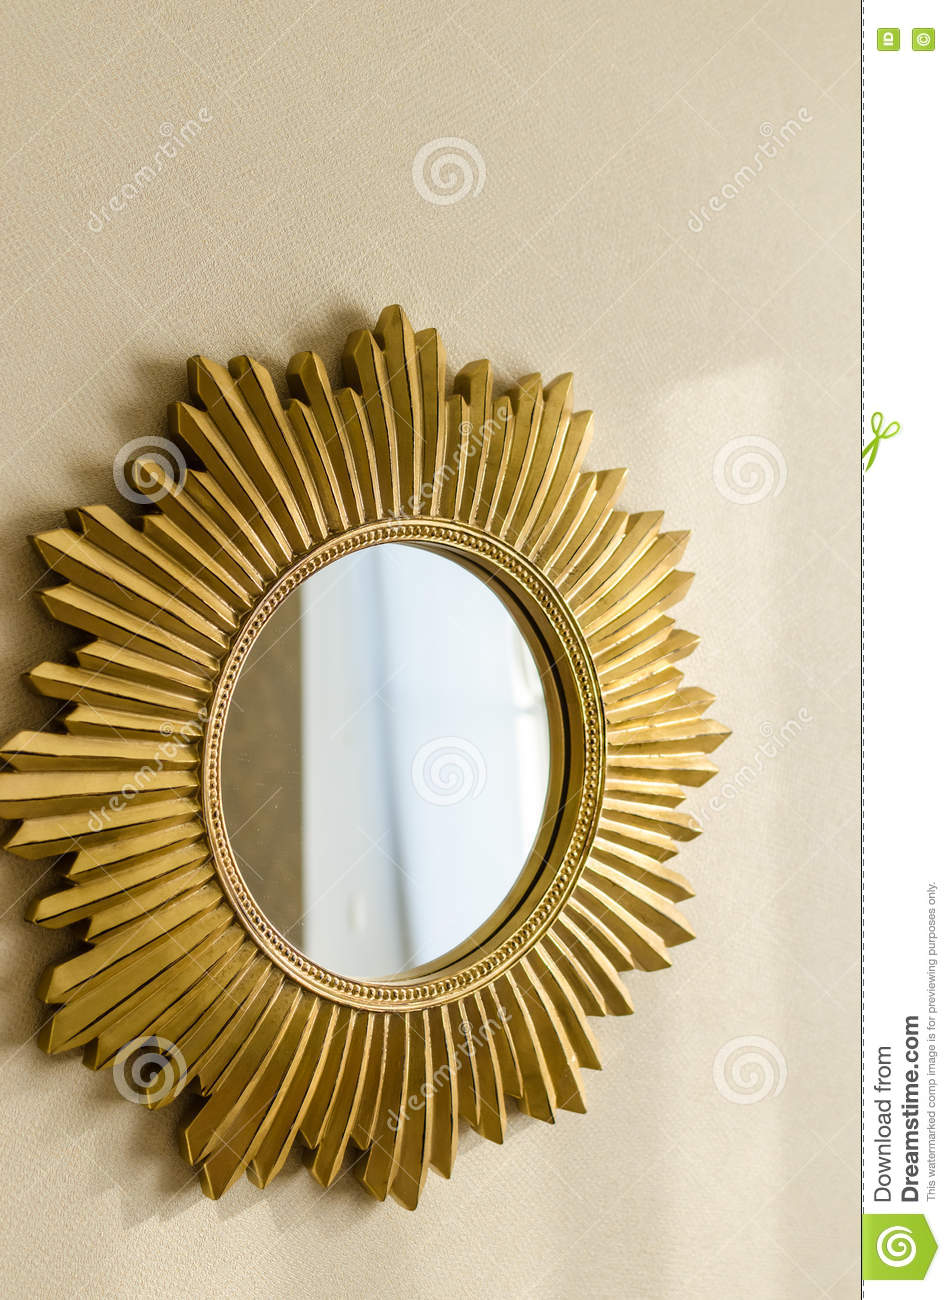 Golden Modern Mirror In Shape Of Sun On The Wall Stock Photo - Image ...